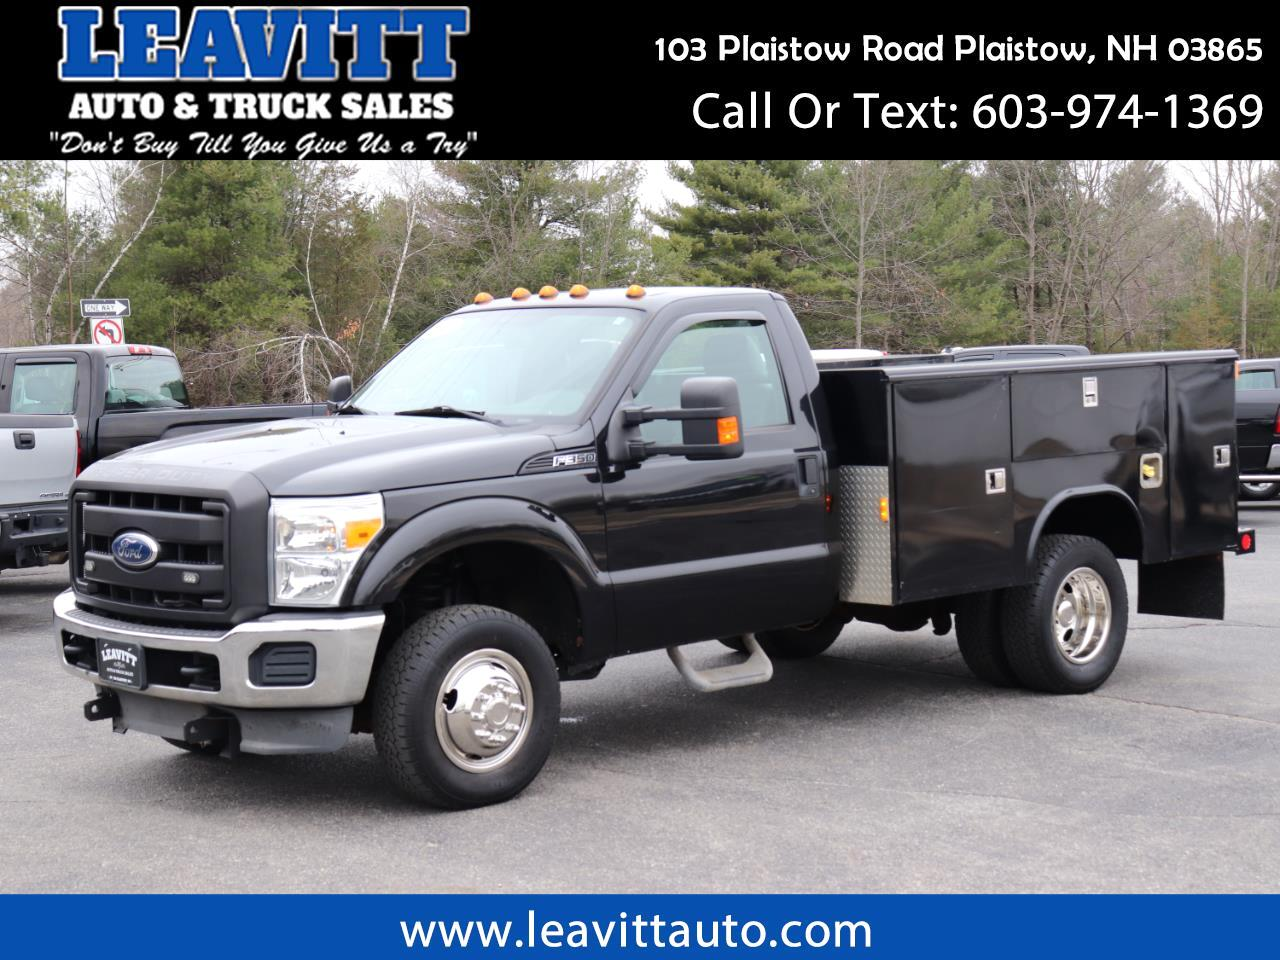 2011 Ford F-350 SD UTILITY DUALLY 4X4 6.2L GAS